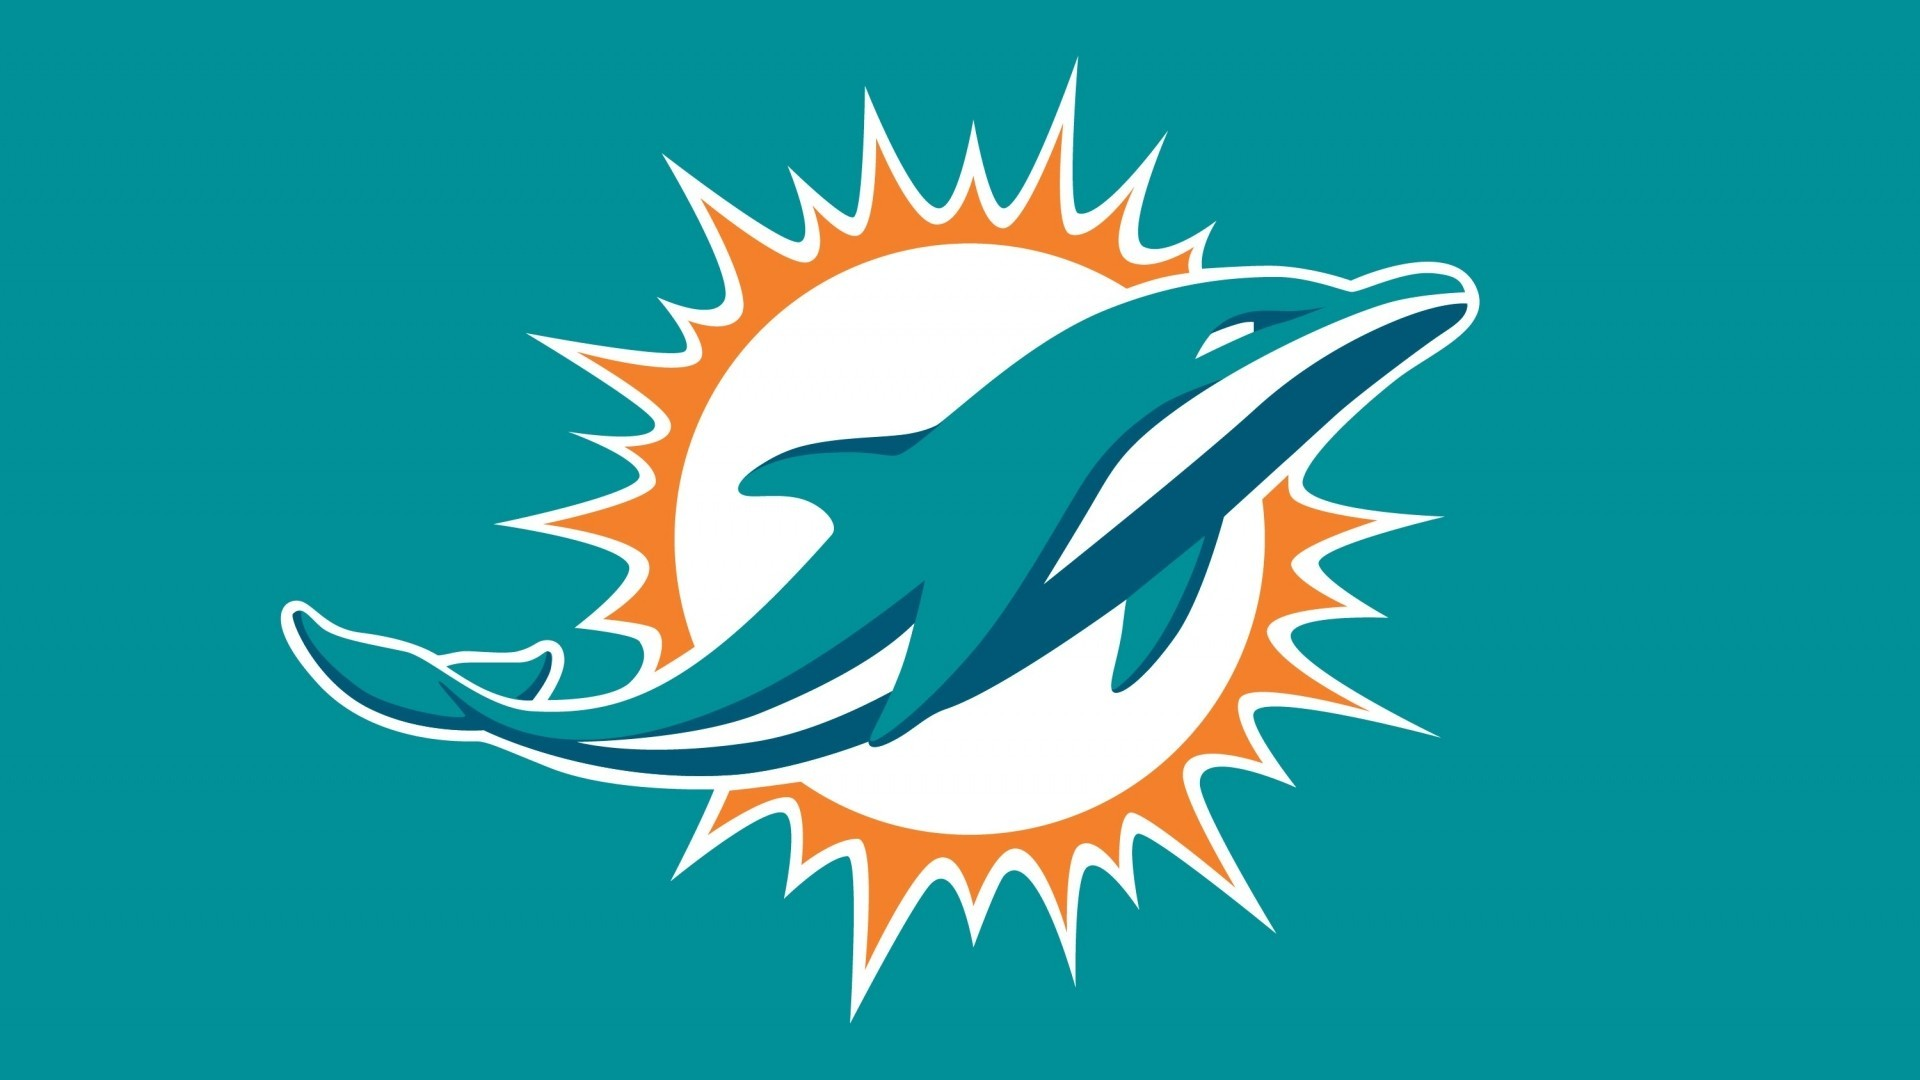 Miami Dolphins background hd